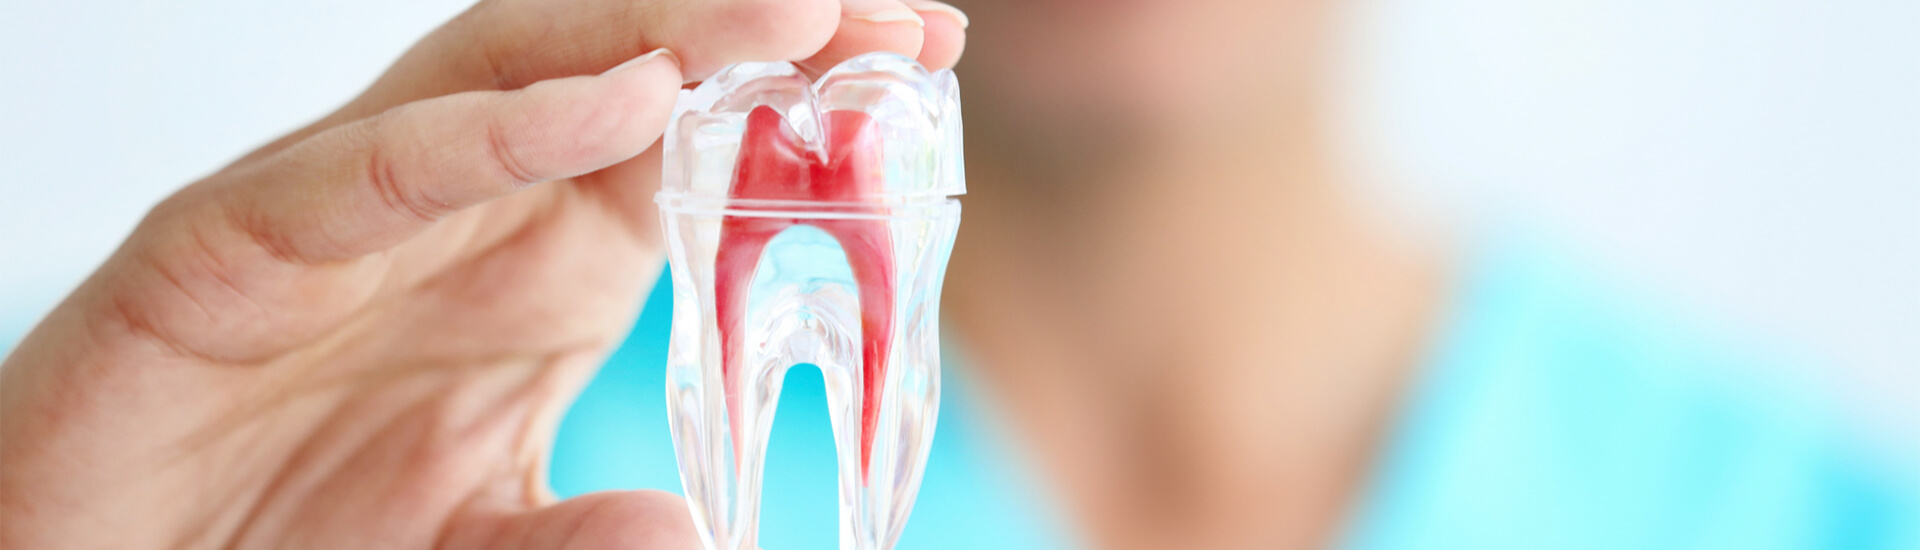 Are Root Canals Painful? The Surprising Truth About Root Canals Treatment